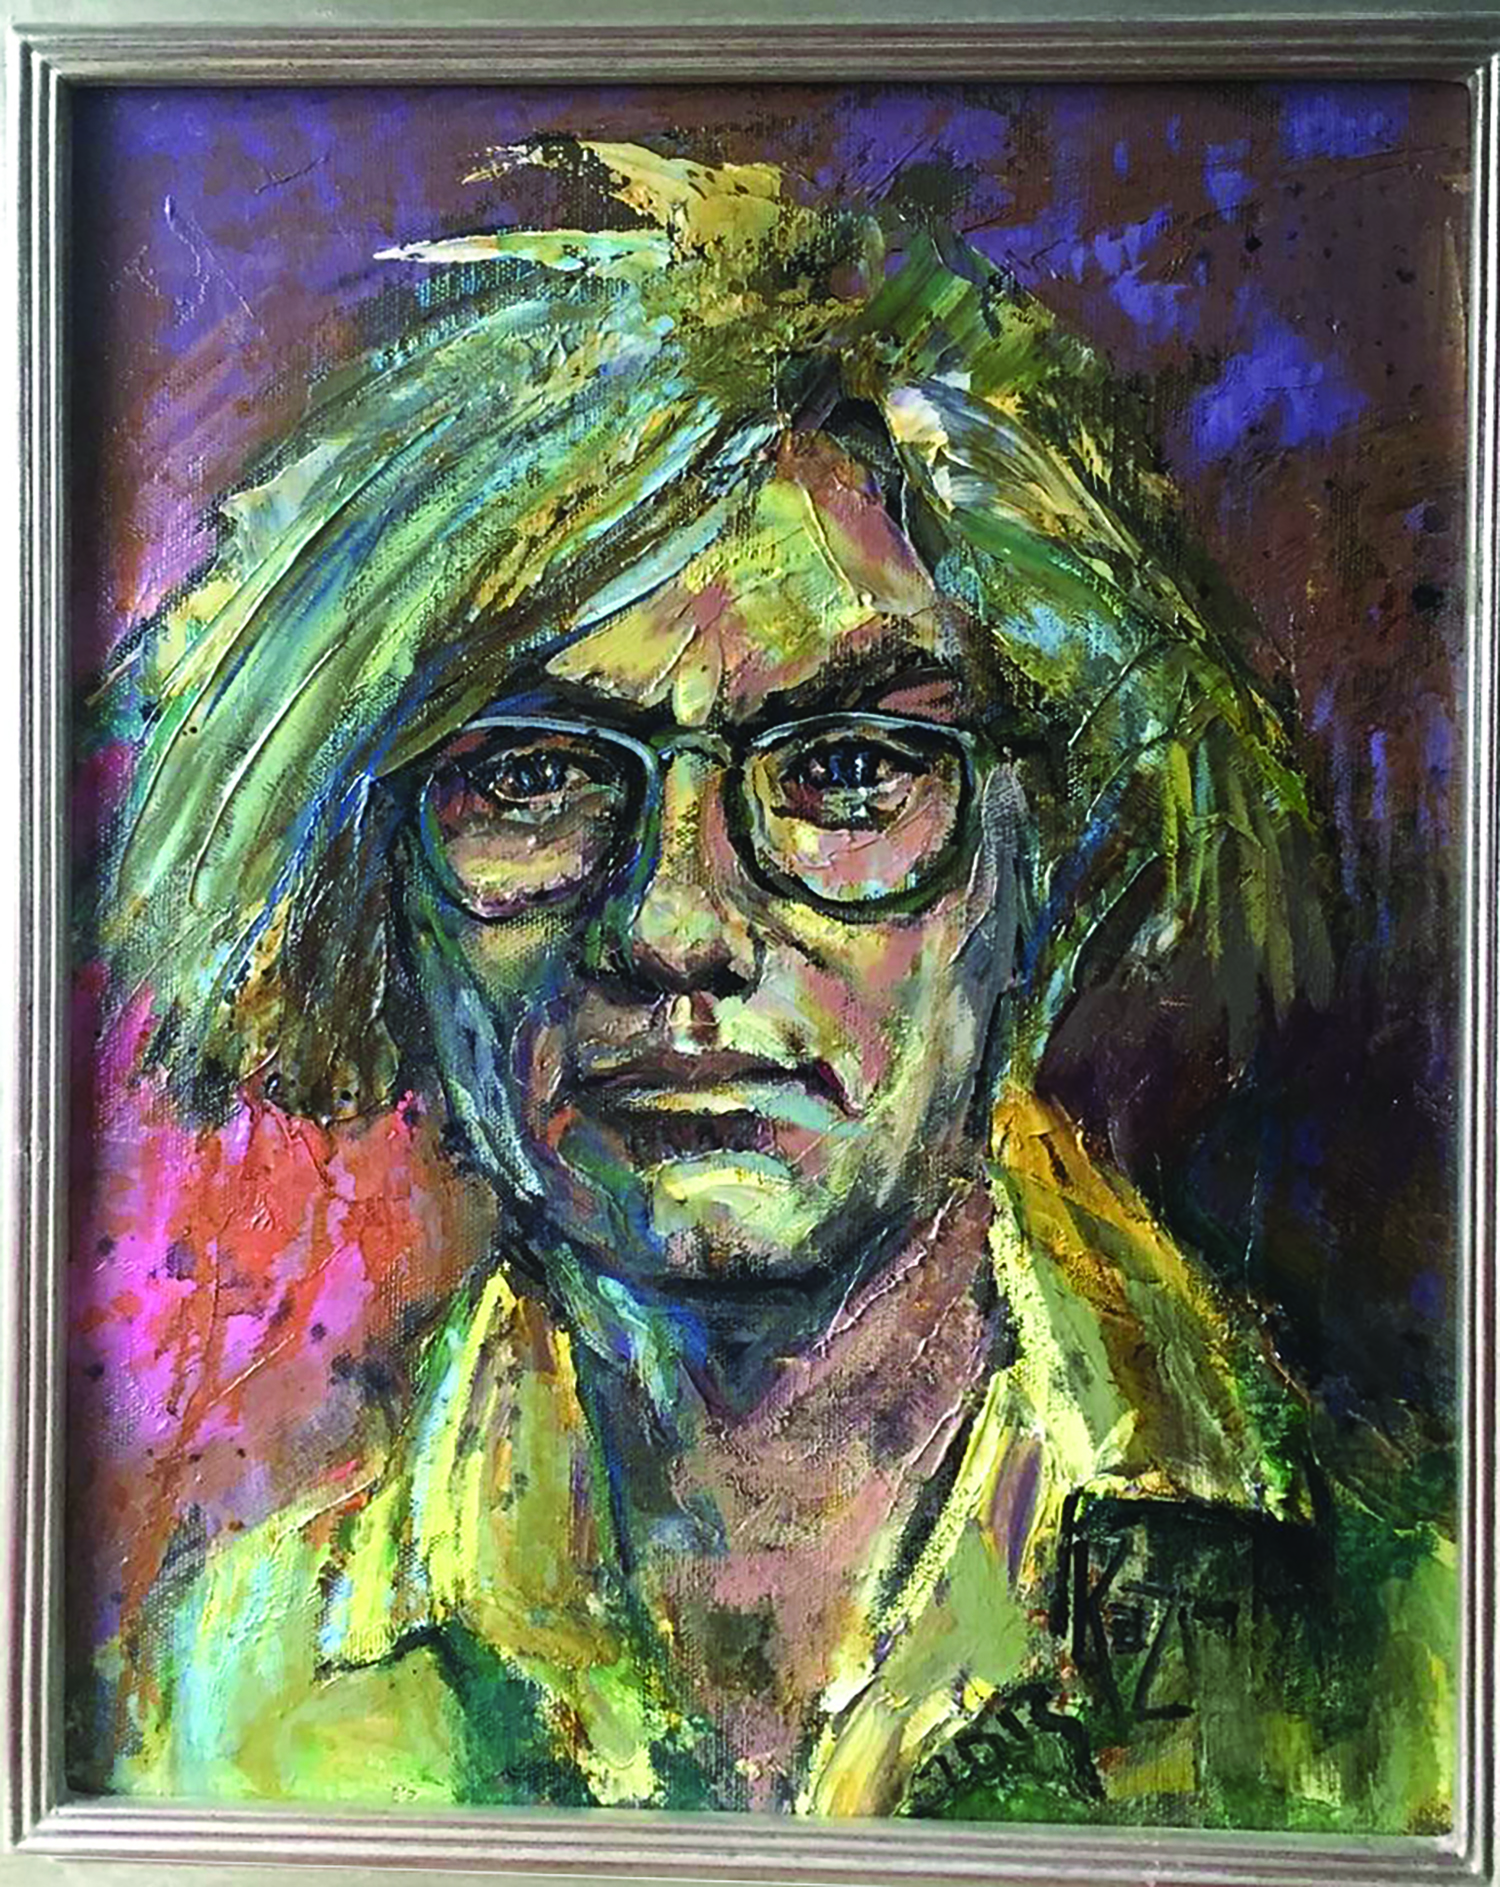 Warhol Portrait To Be Sold Here To Raise Money For Fallen Soldiers' Portraits